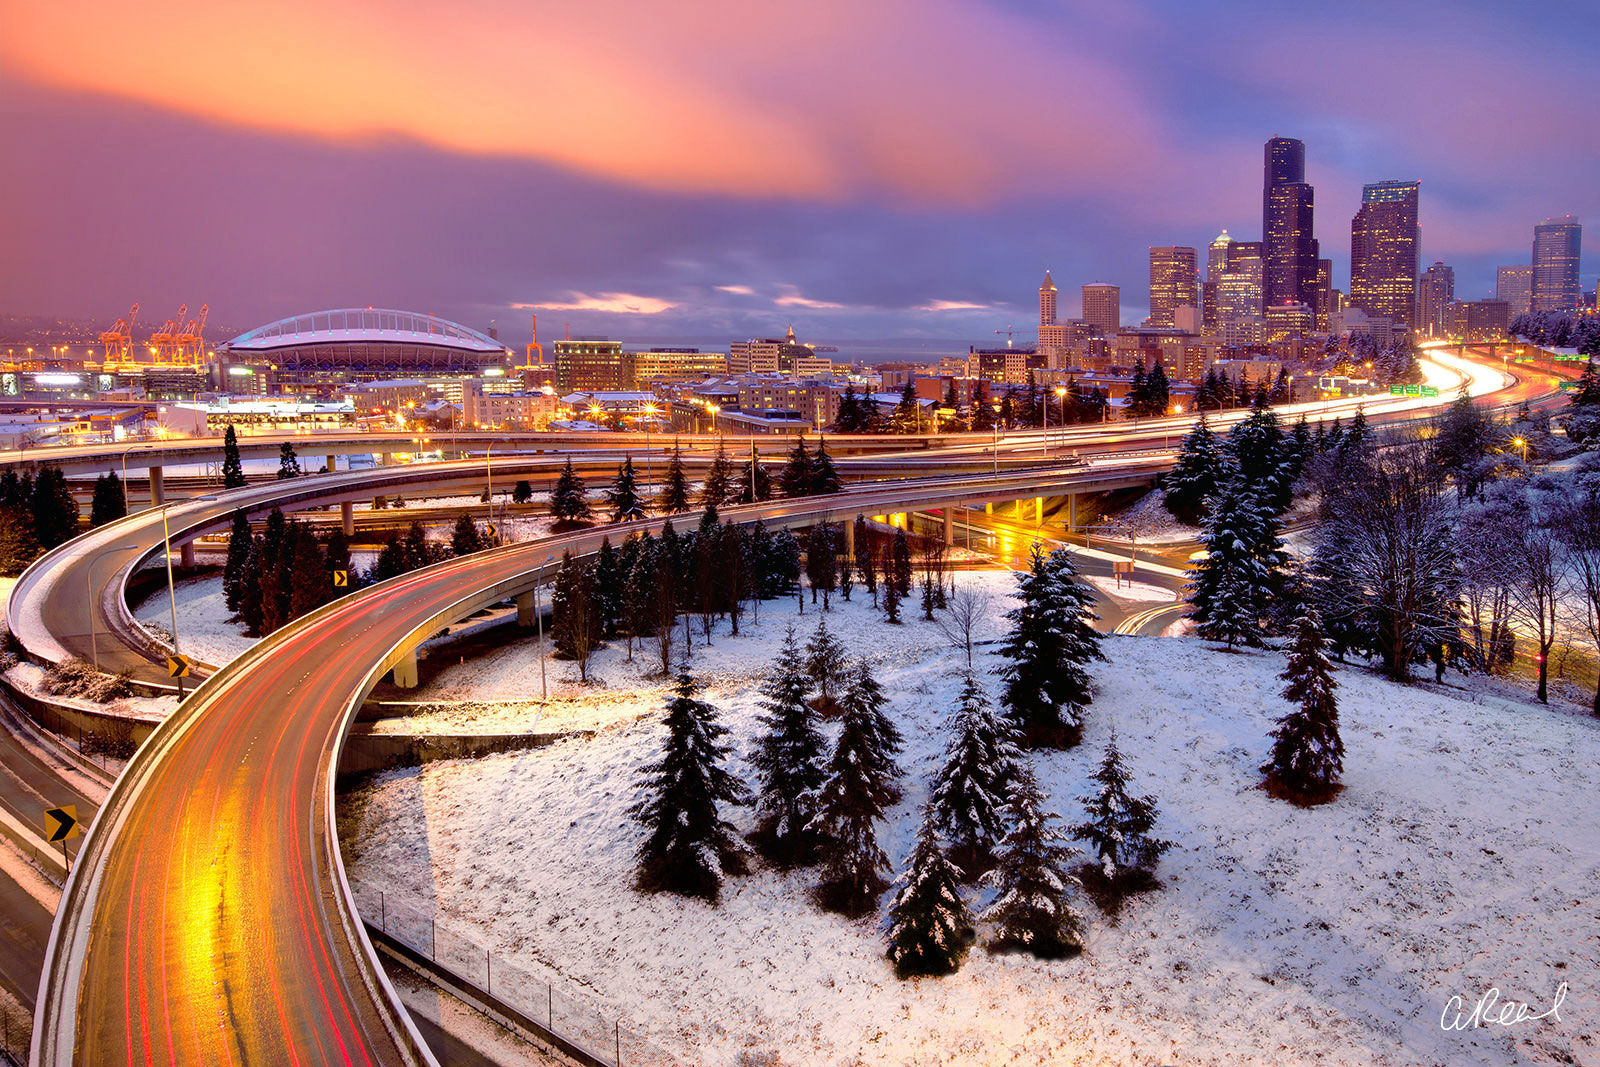 Seattle covered In Snow At Night, photo